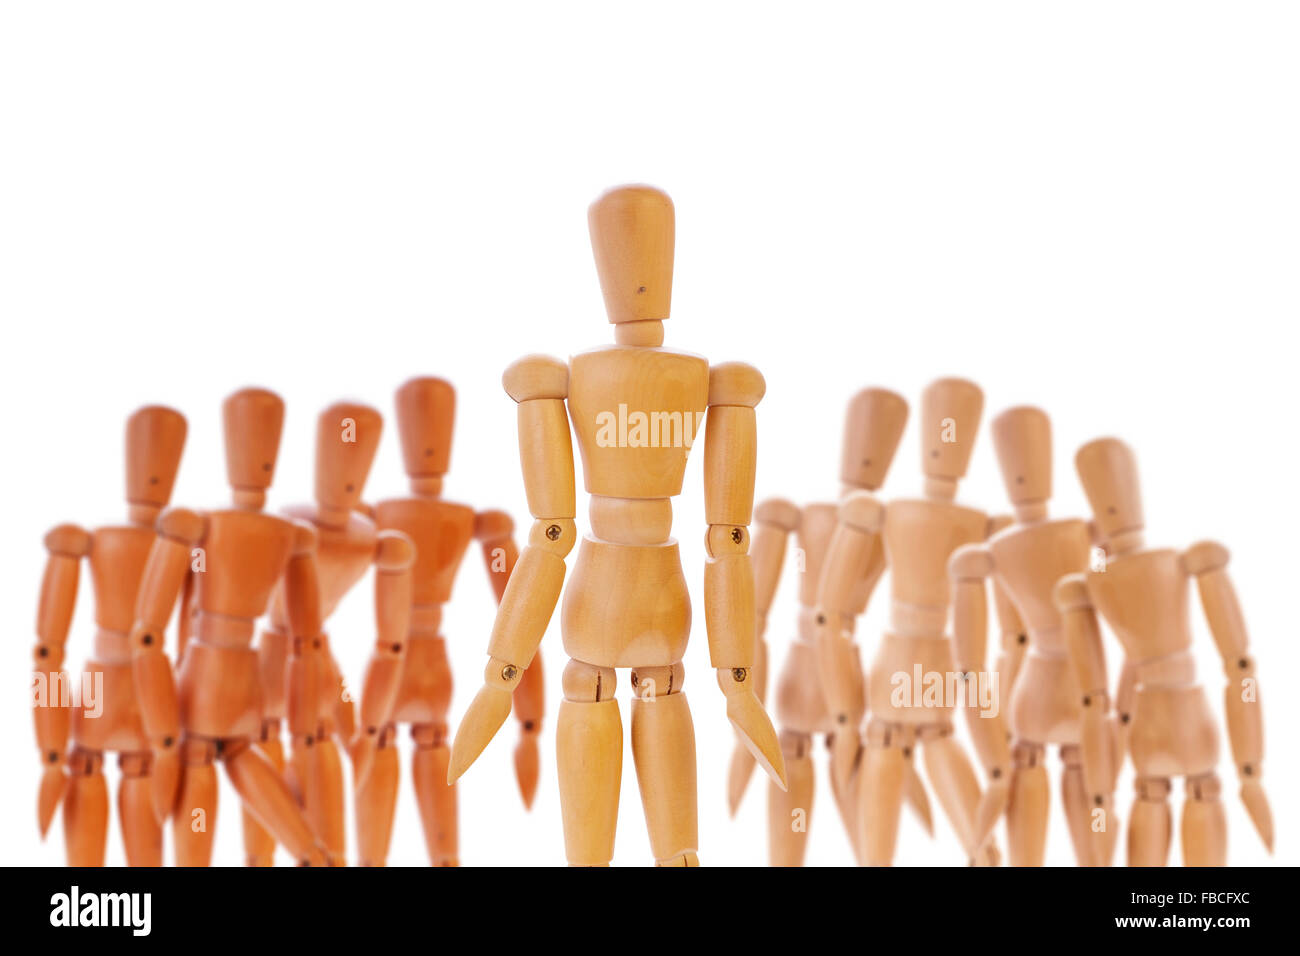 Wooden dummy character standing between two different colored teams. Isolated on white. - Stock Image